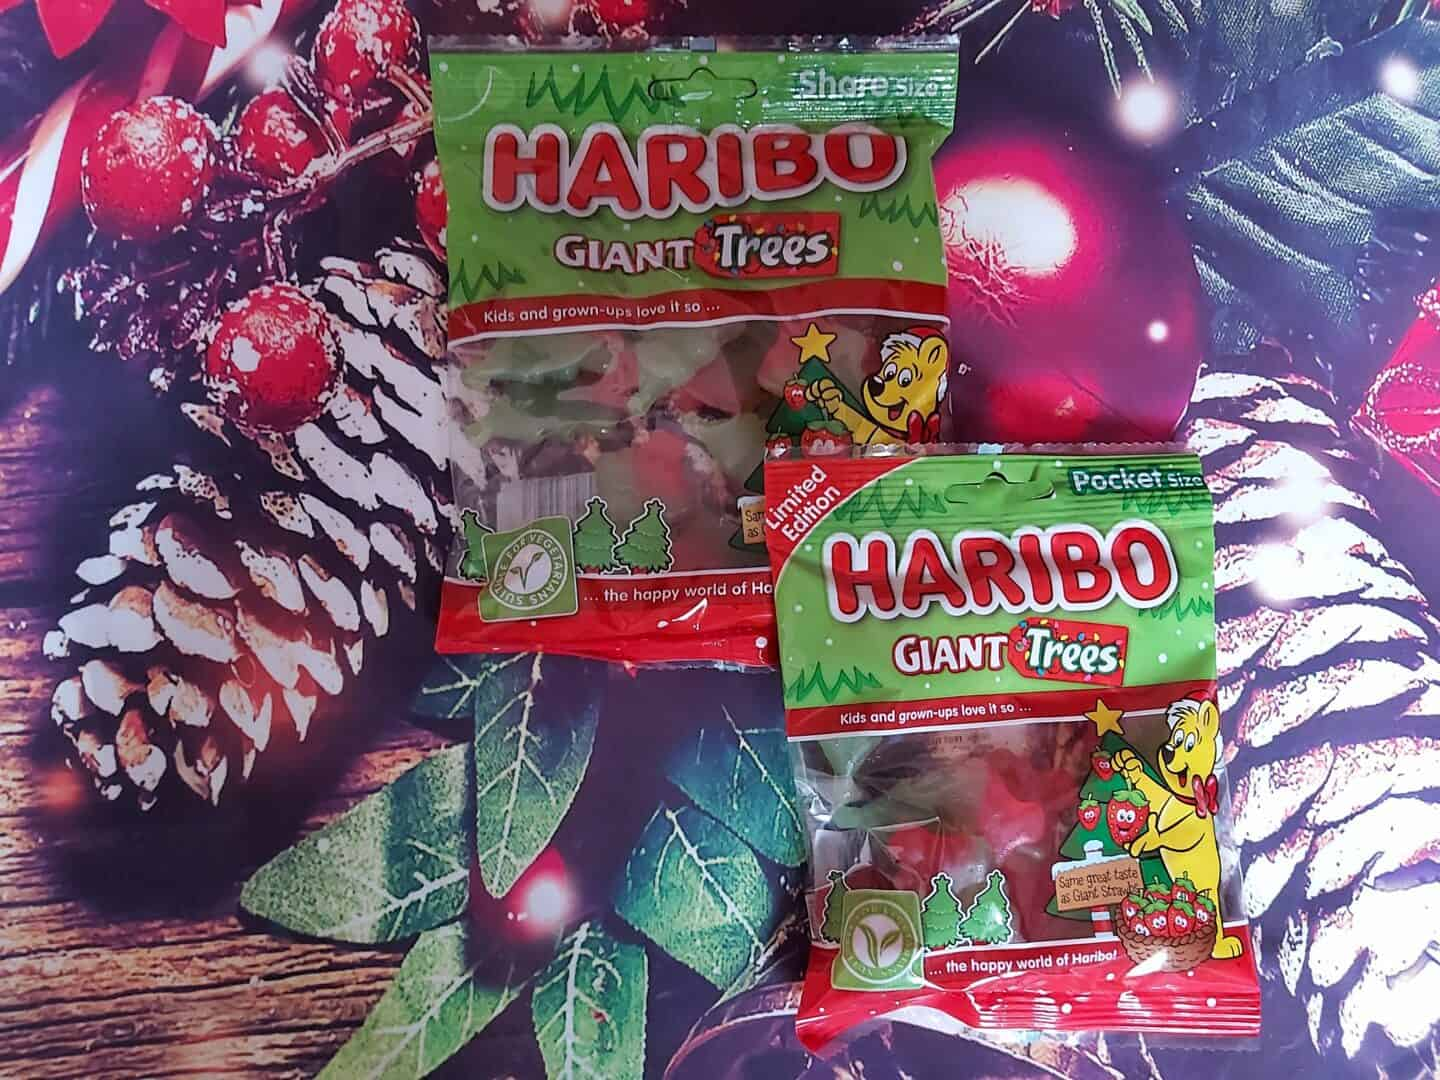 Two packets of Haribo Christmas trees against a festive background